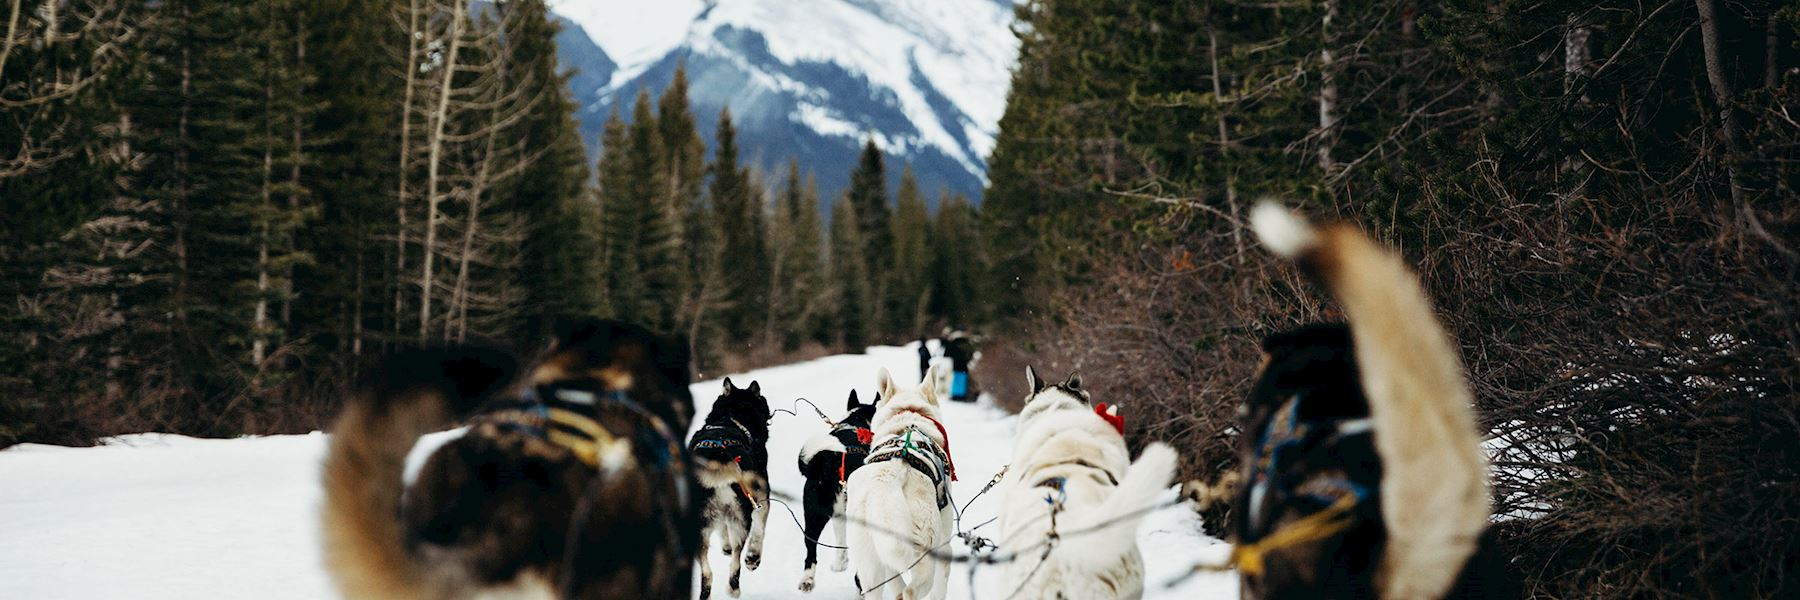 Dog-sledding tour in the Callaghan Valley